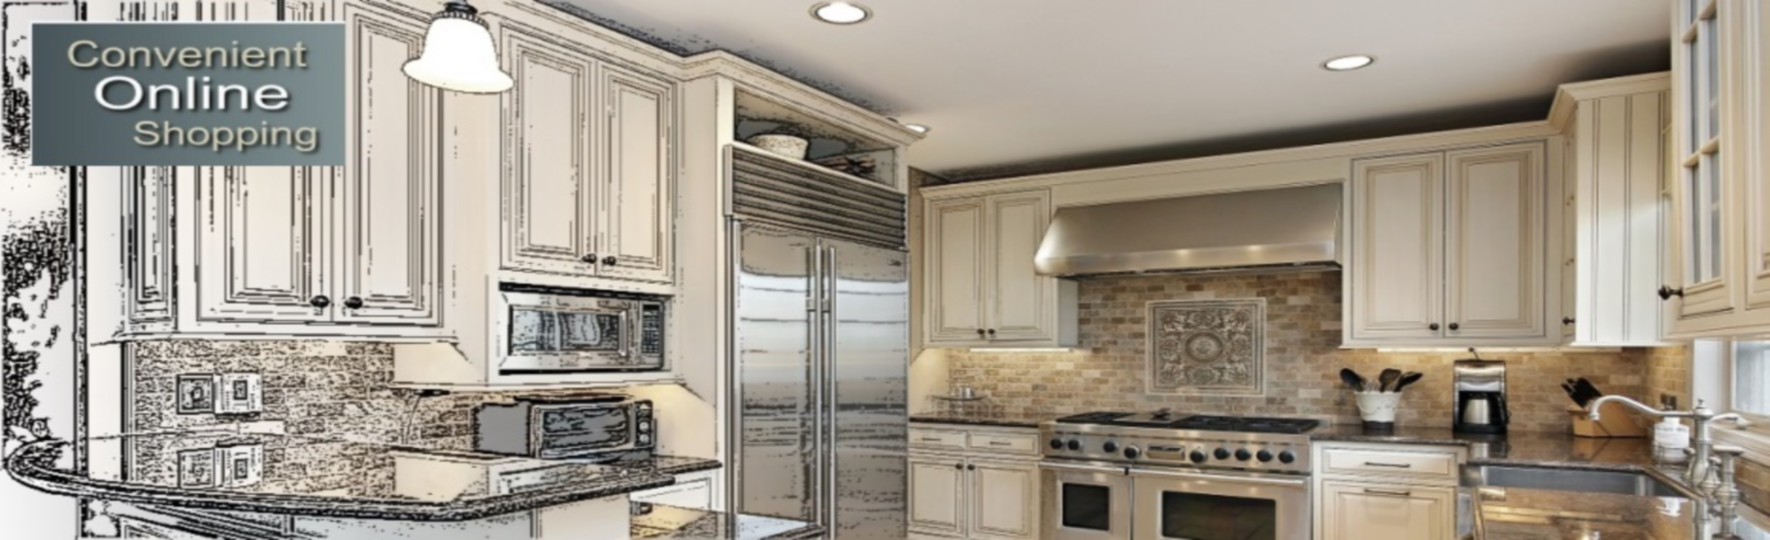 Embled Kitchen Cabinets Online